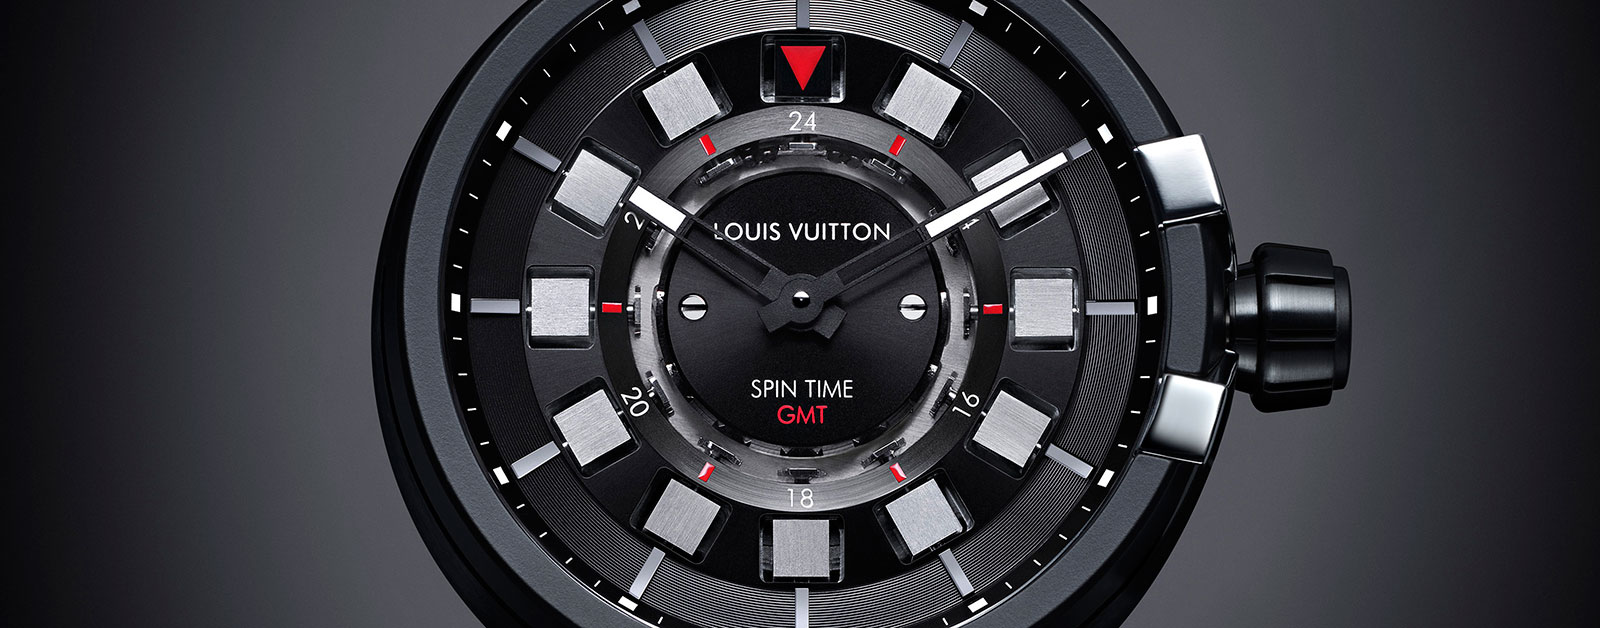 Louis-Vuitton-Tambour-eVolution-In-Black-Spin-Time-GMT-1